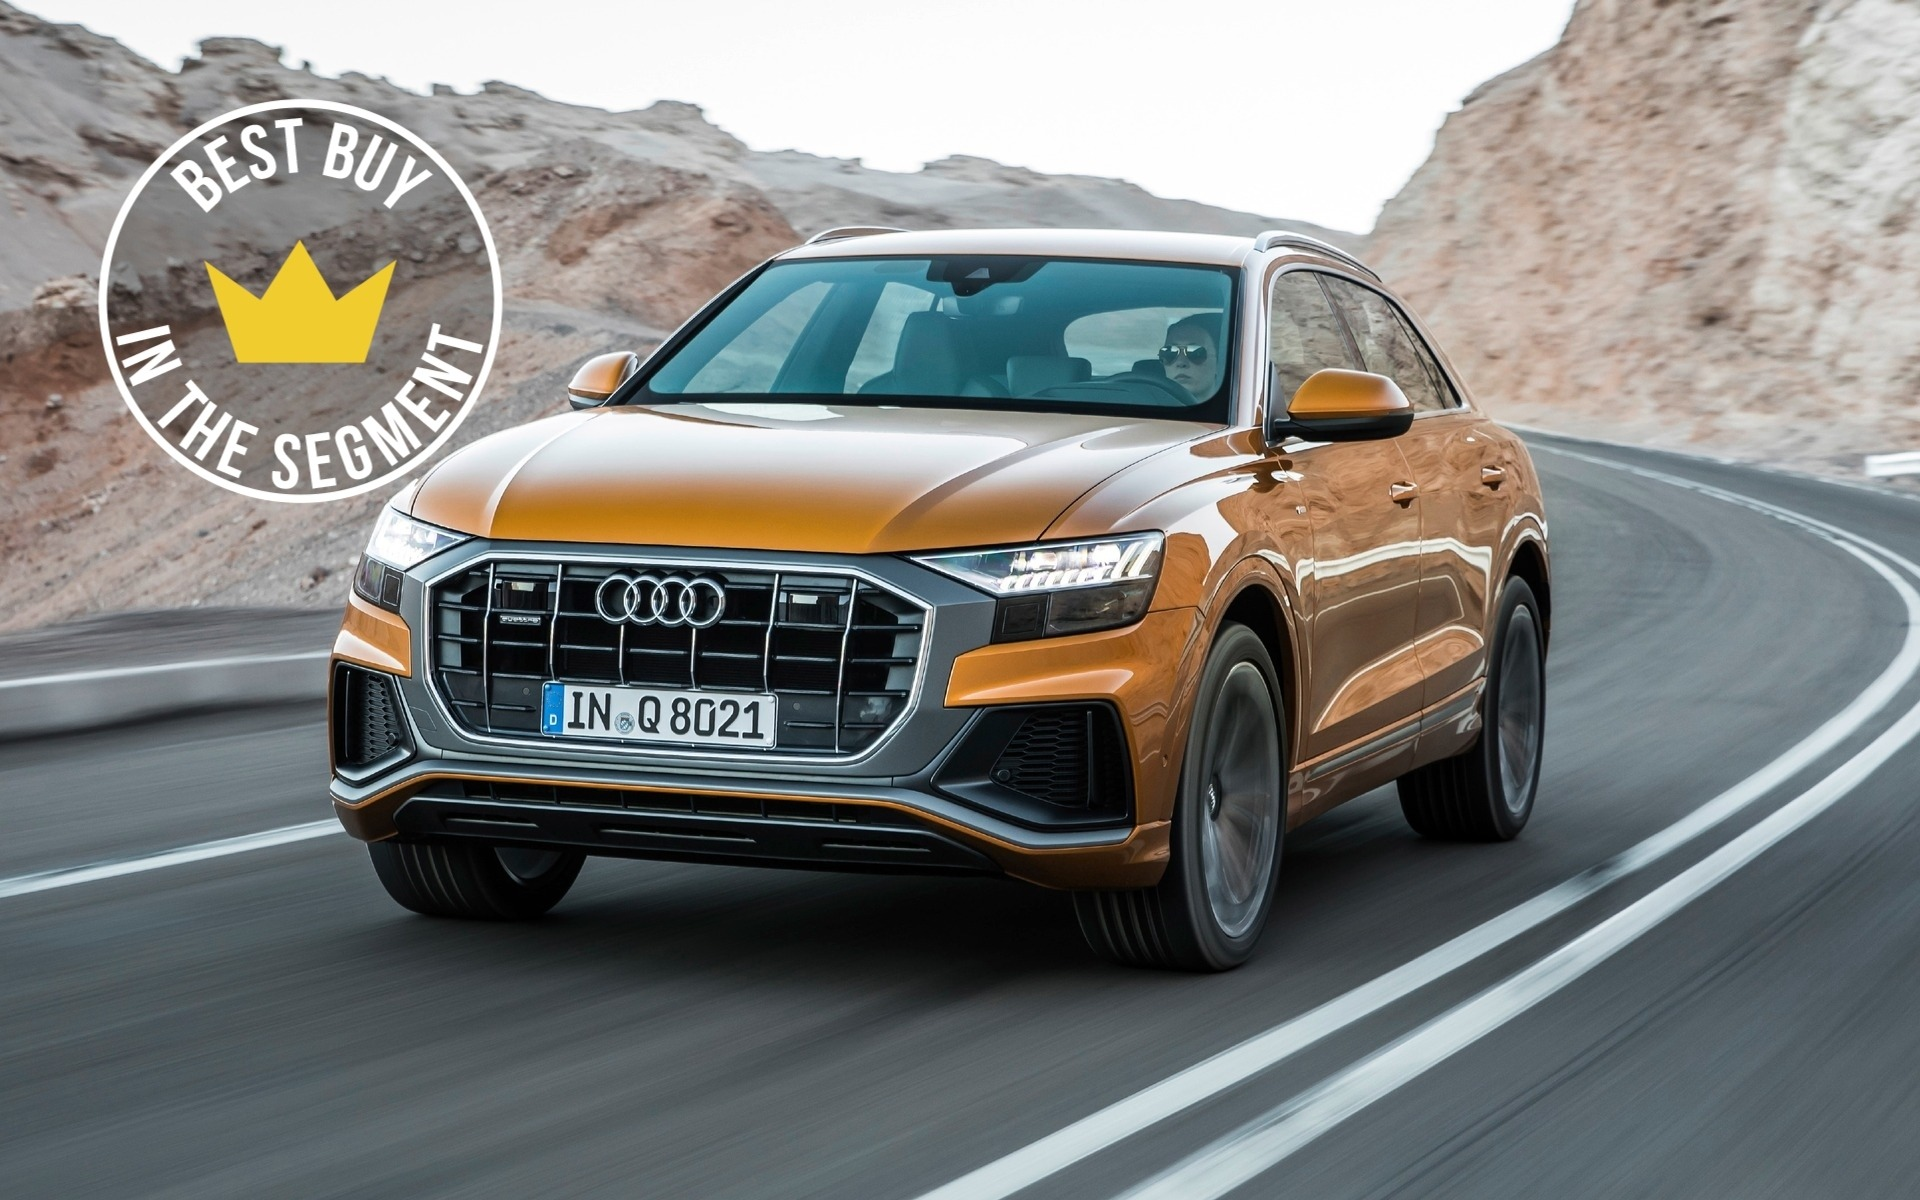 hight resolution of the car guide s 2019 best buys audi q7 and q8